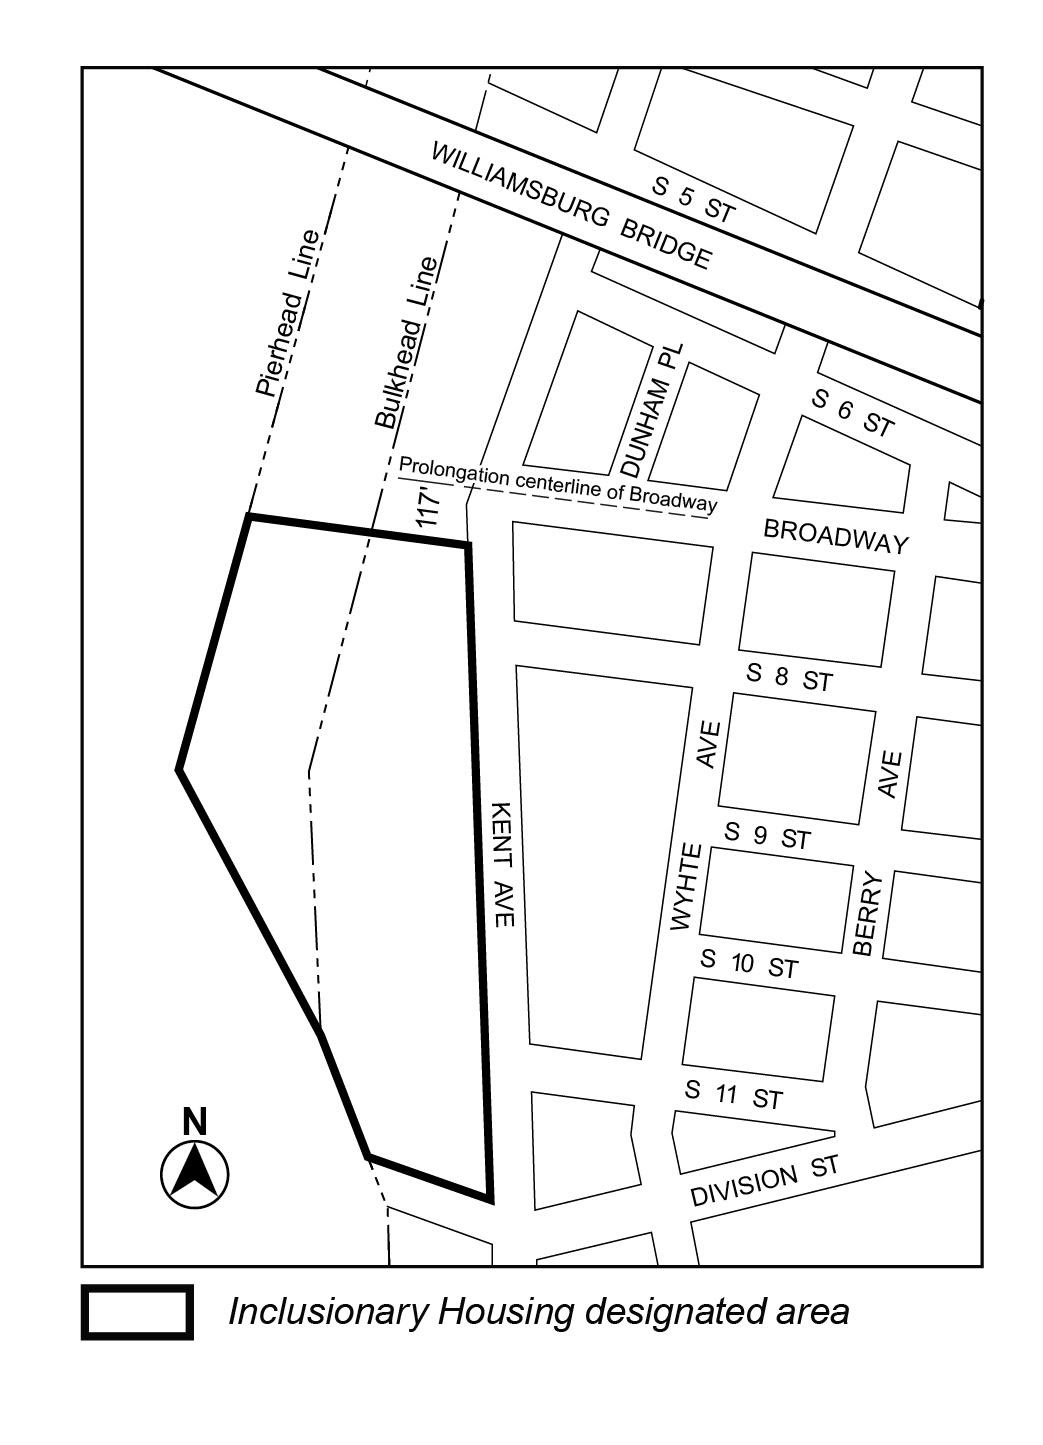 Zoning Resolutions F-Inclusionary Housing Designated Areas and Mandatory Inclusionary Housing Areas_2.38